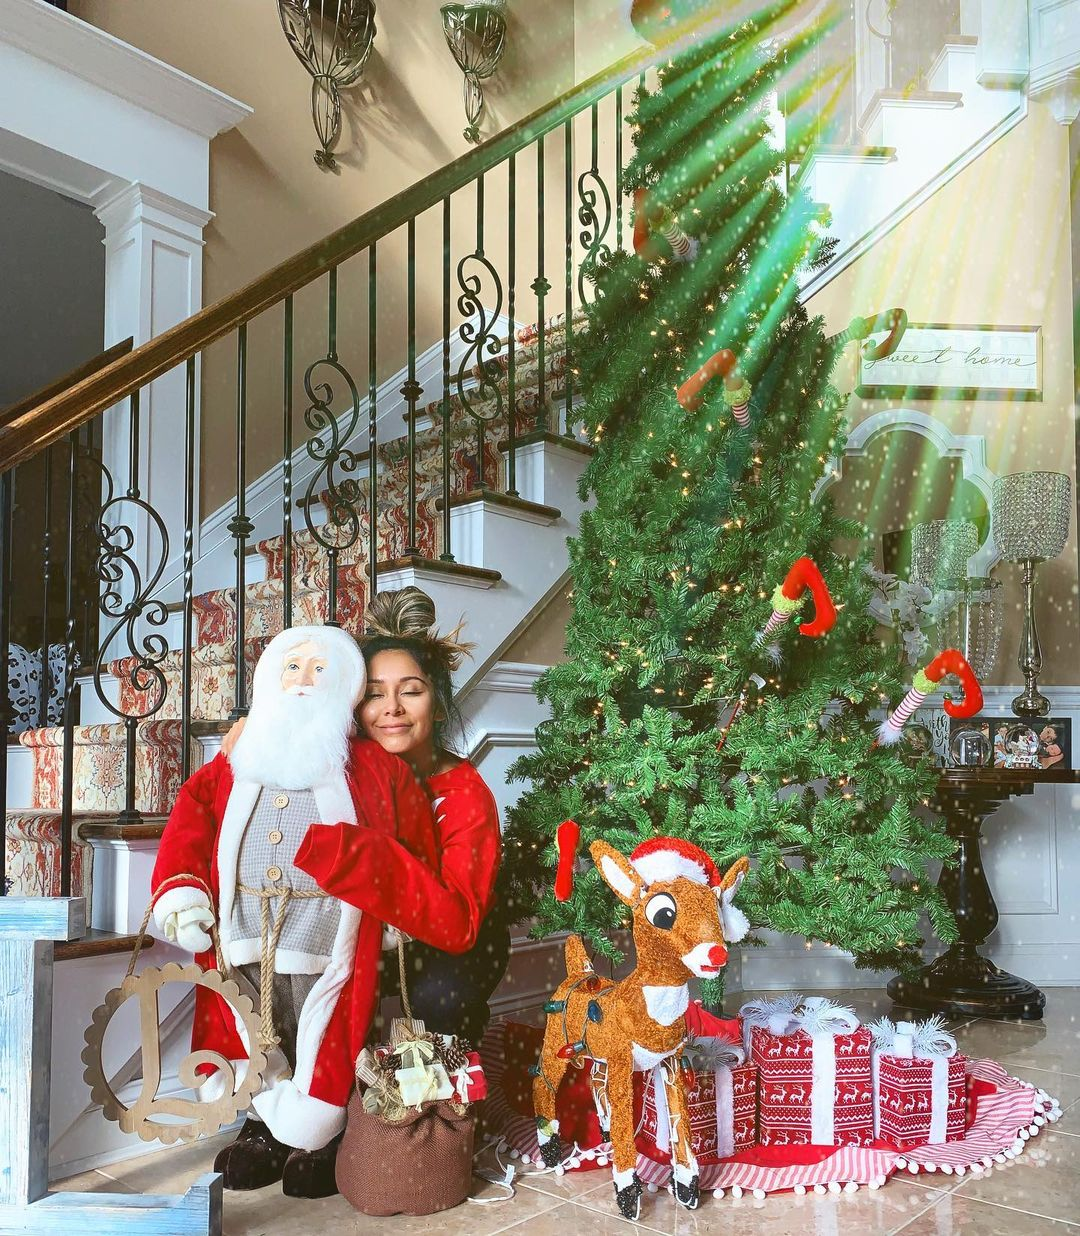 Celebrity Christmas Decor 2020 Celebrity Holiday Decorations of 2020: From Modern to Traditional